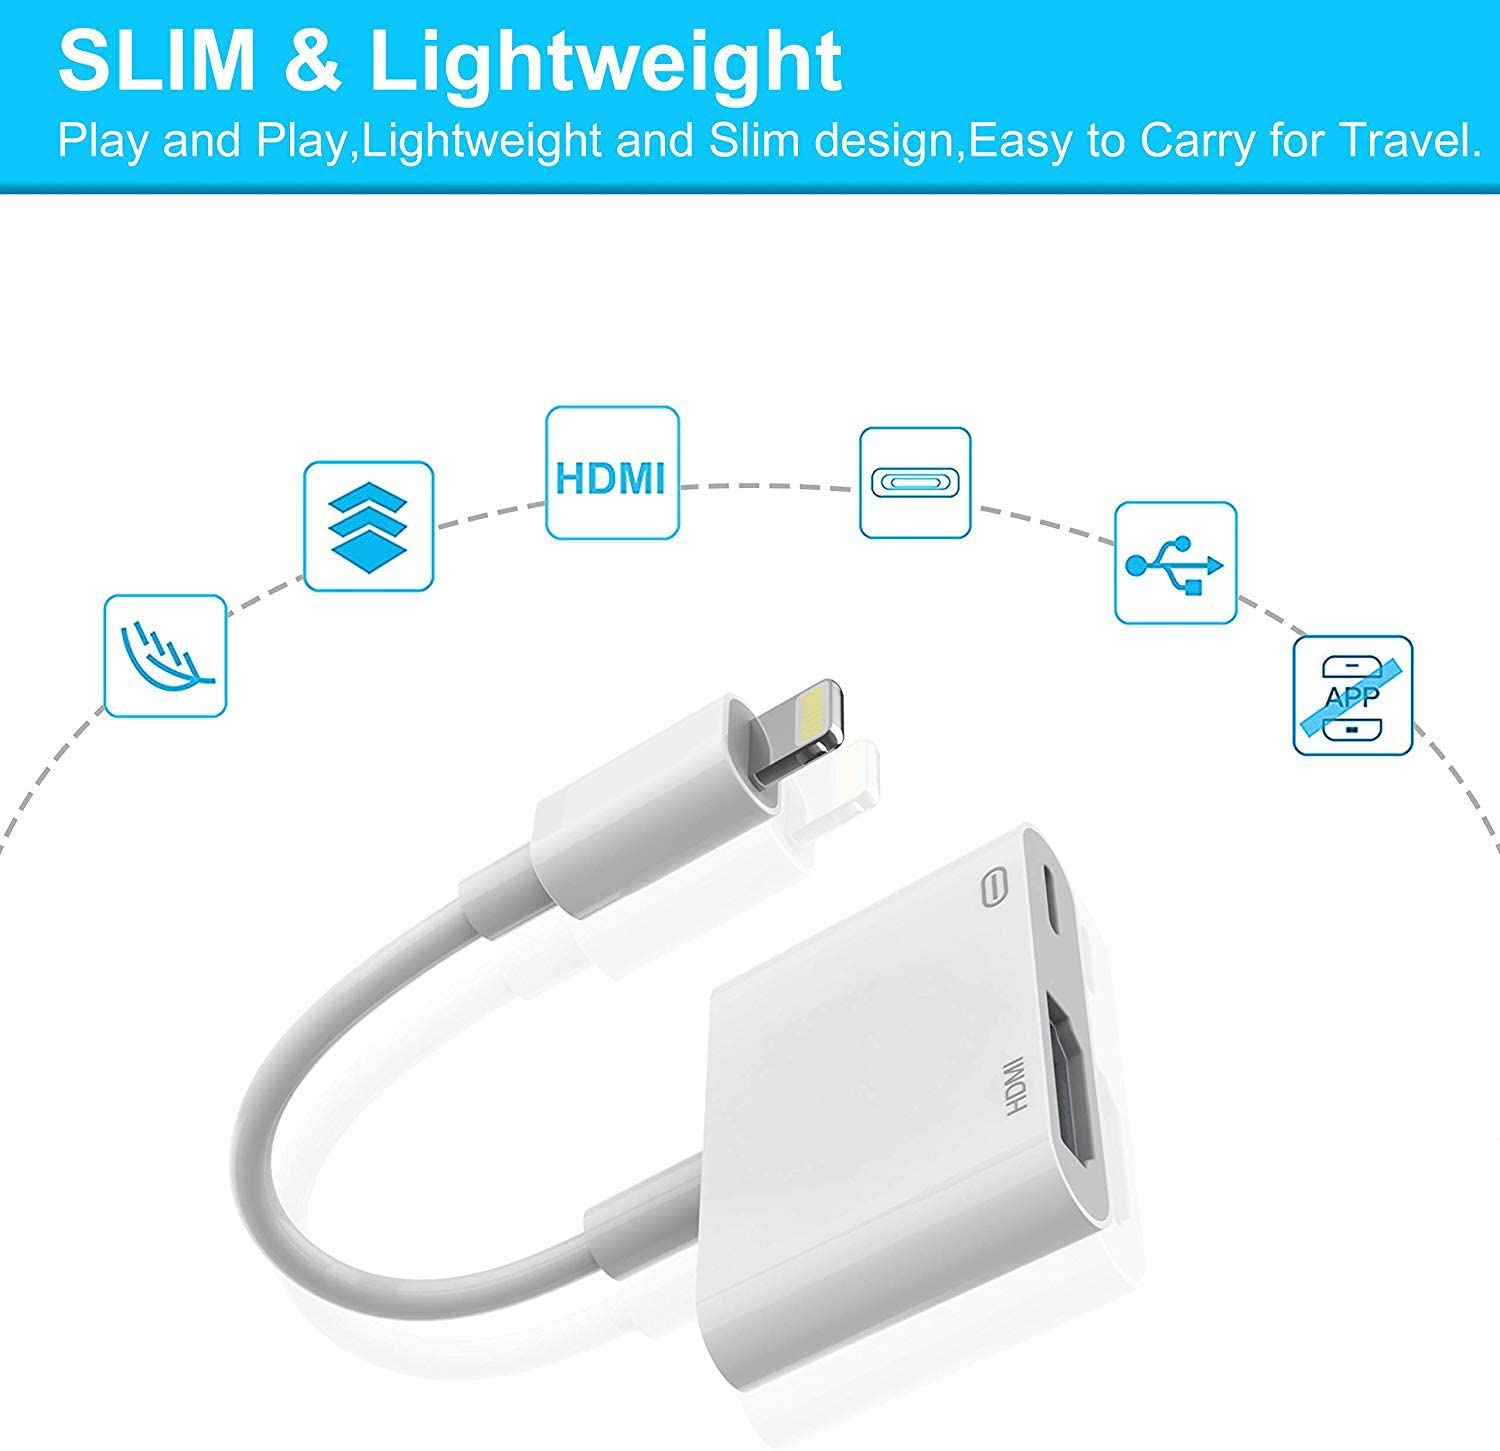 Lighting to HDMI Adapter,Converter iPhone to HDMI Digital AV Adapter,2 in 1 Plug and Play 1080P HD TV Connector Compatible with iPhone X iPhone 8//7//Plus iPad iPod Models on TV//Monitor//Projector